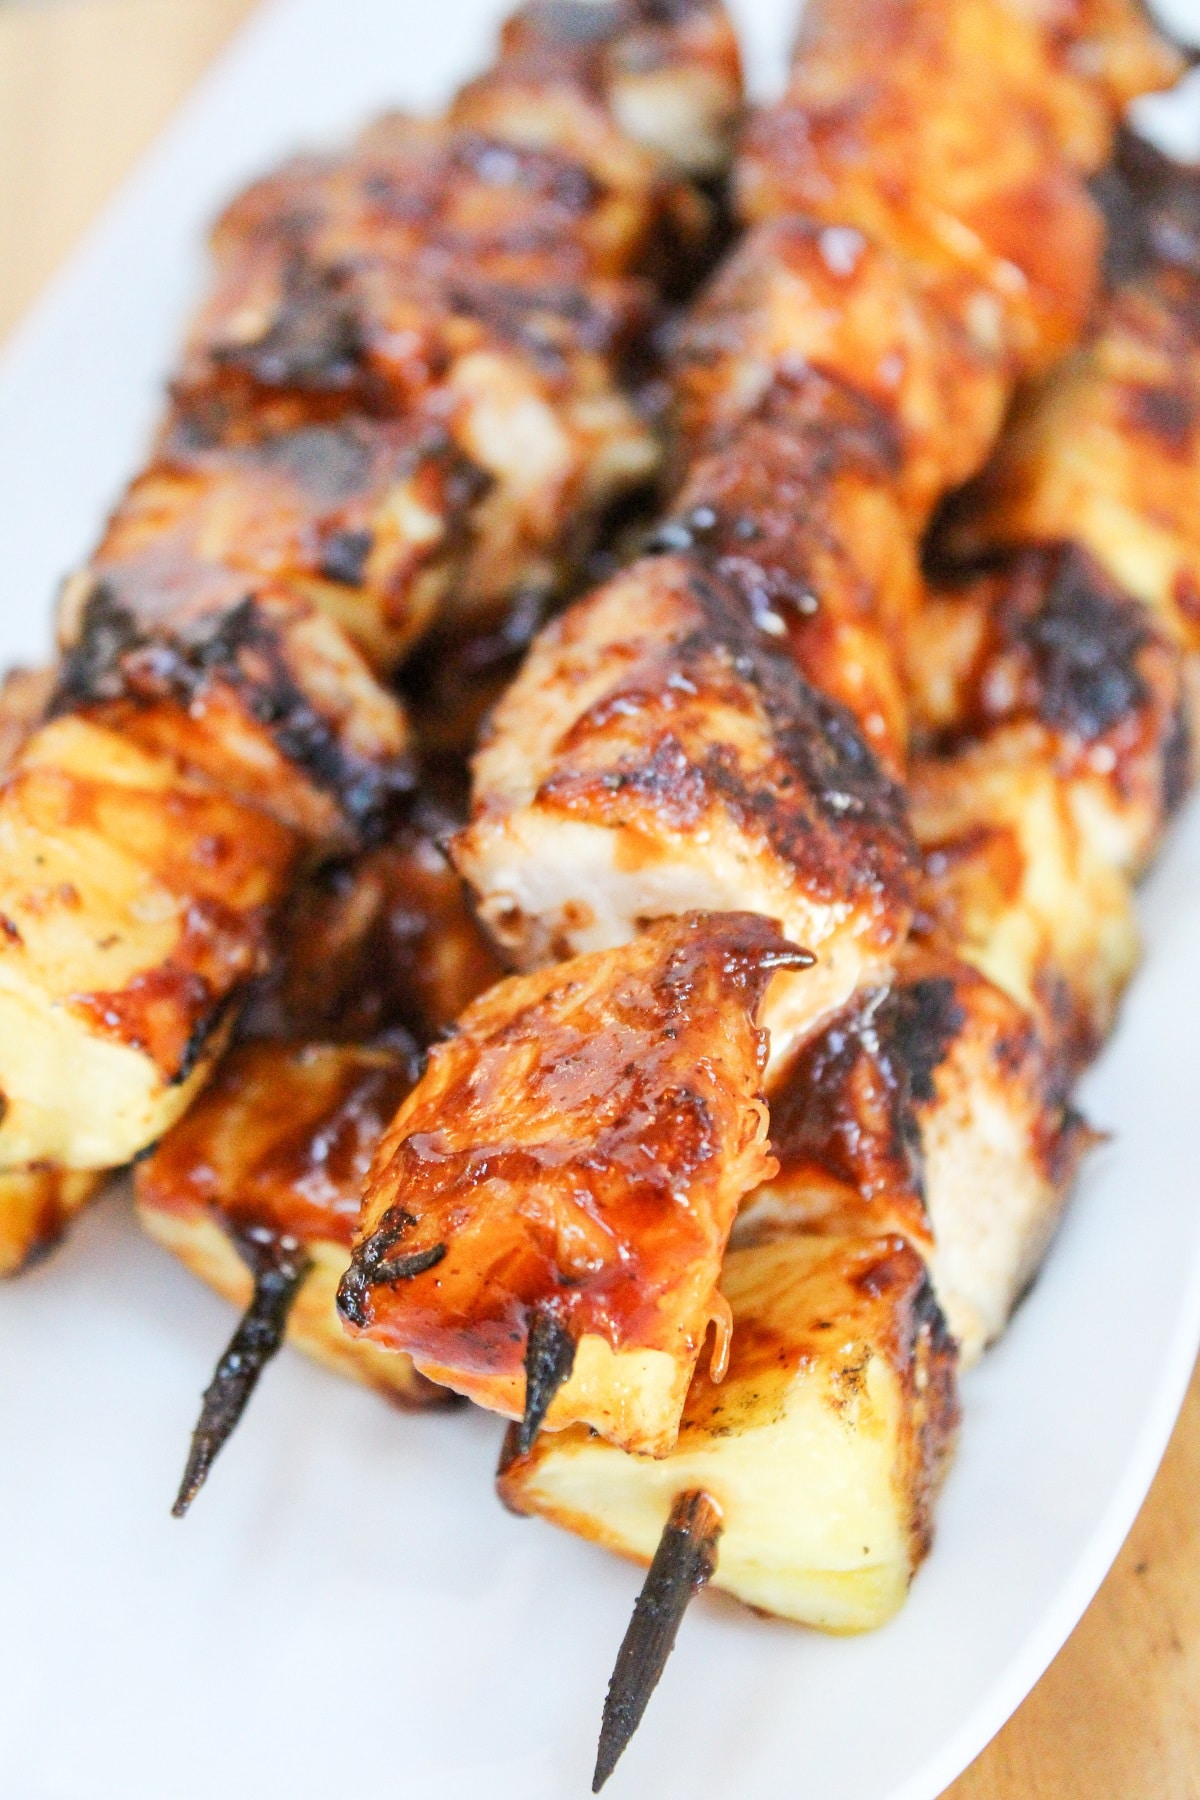 chicken pineapple with bbq sauce on a stick